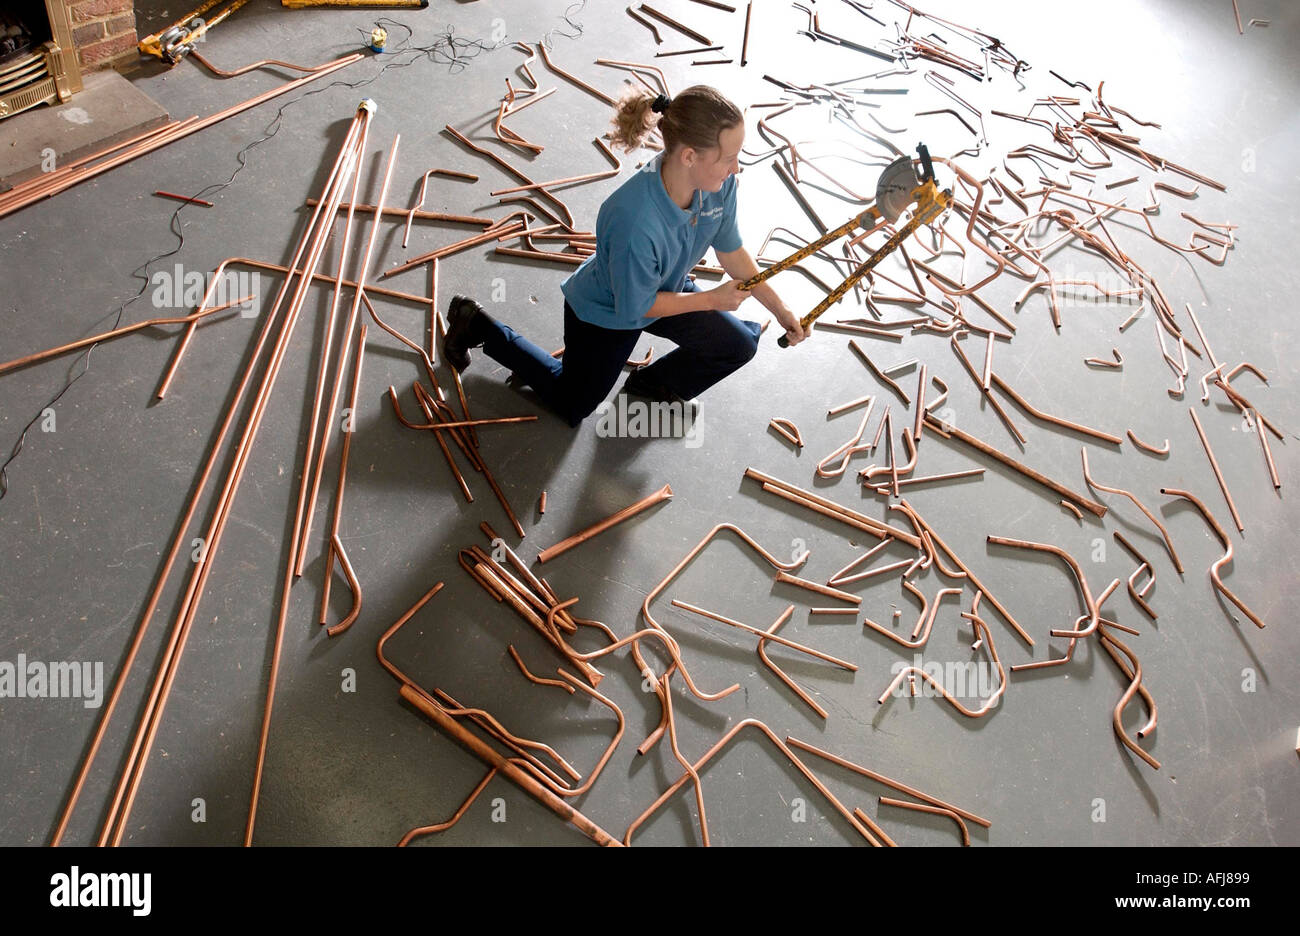 A Young Girl Training To Be A Plumber With Copper Pipes